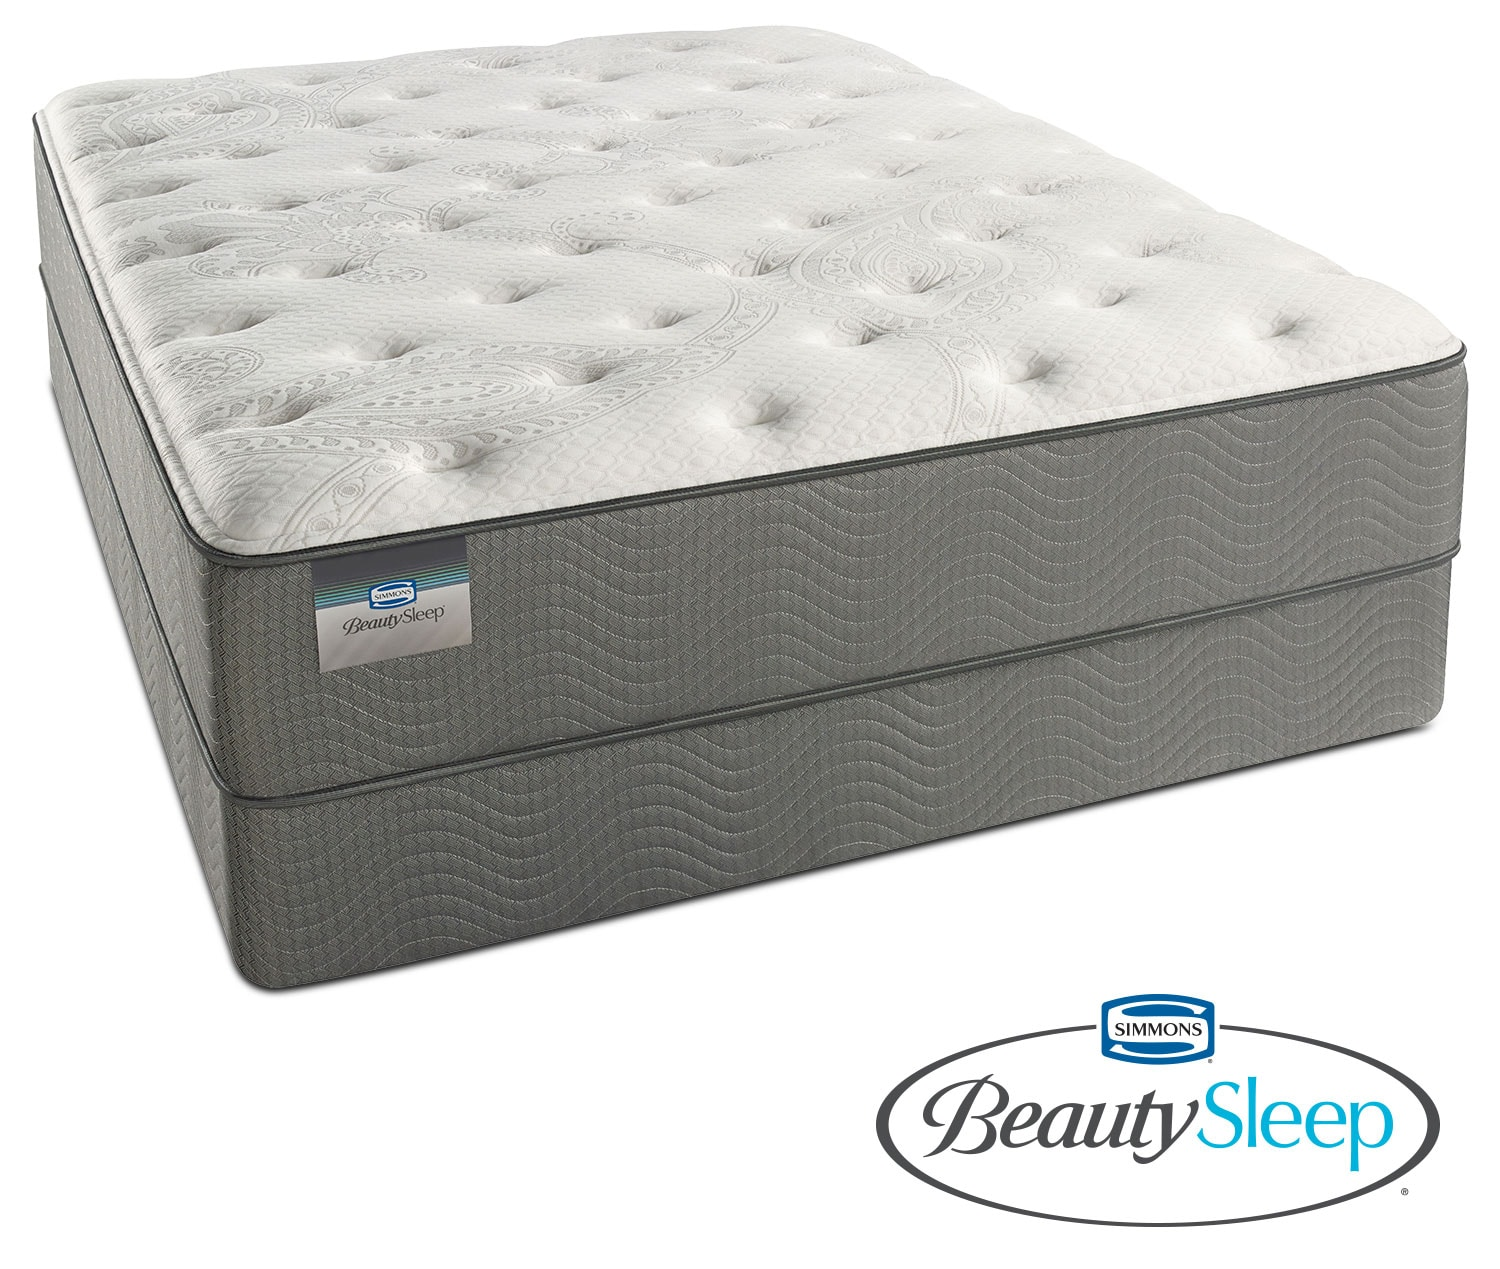 Mattresses and Bedding - Stags Leap Luxury Firm Full Mattress and Low-Profile Foundation Set